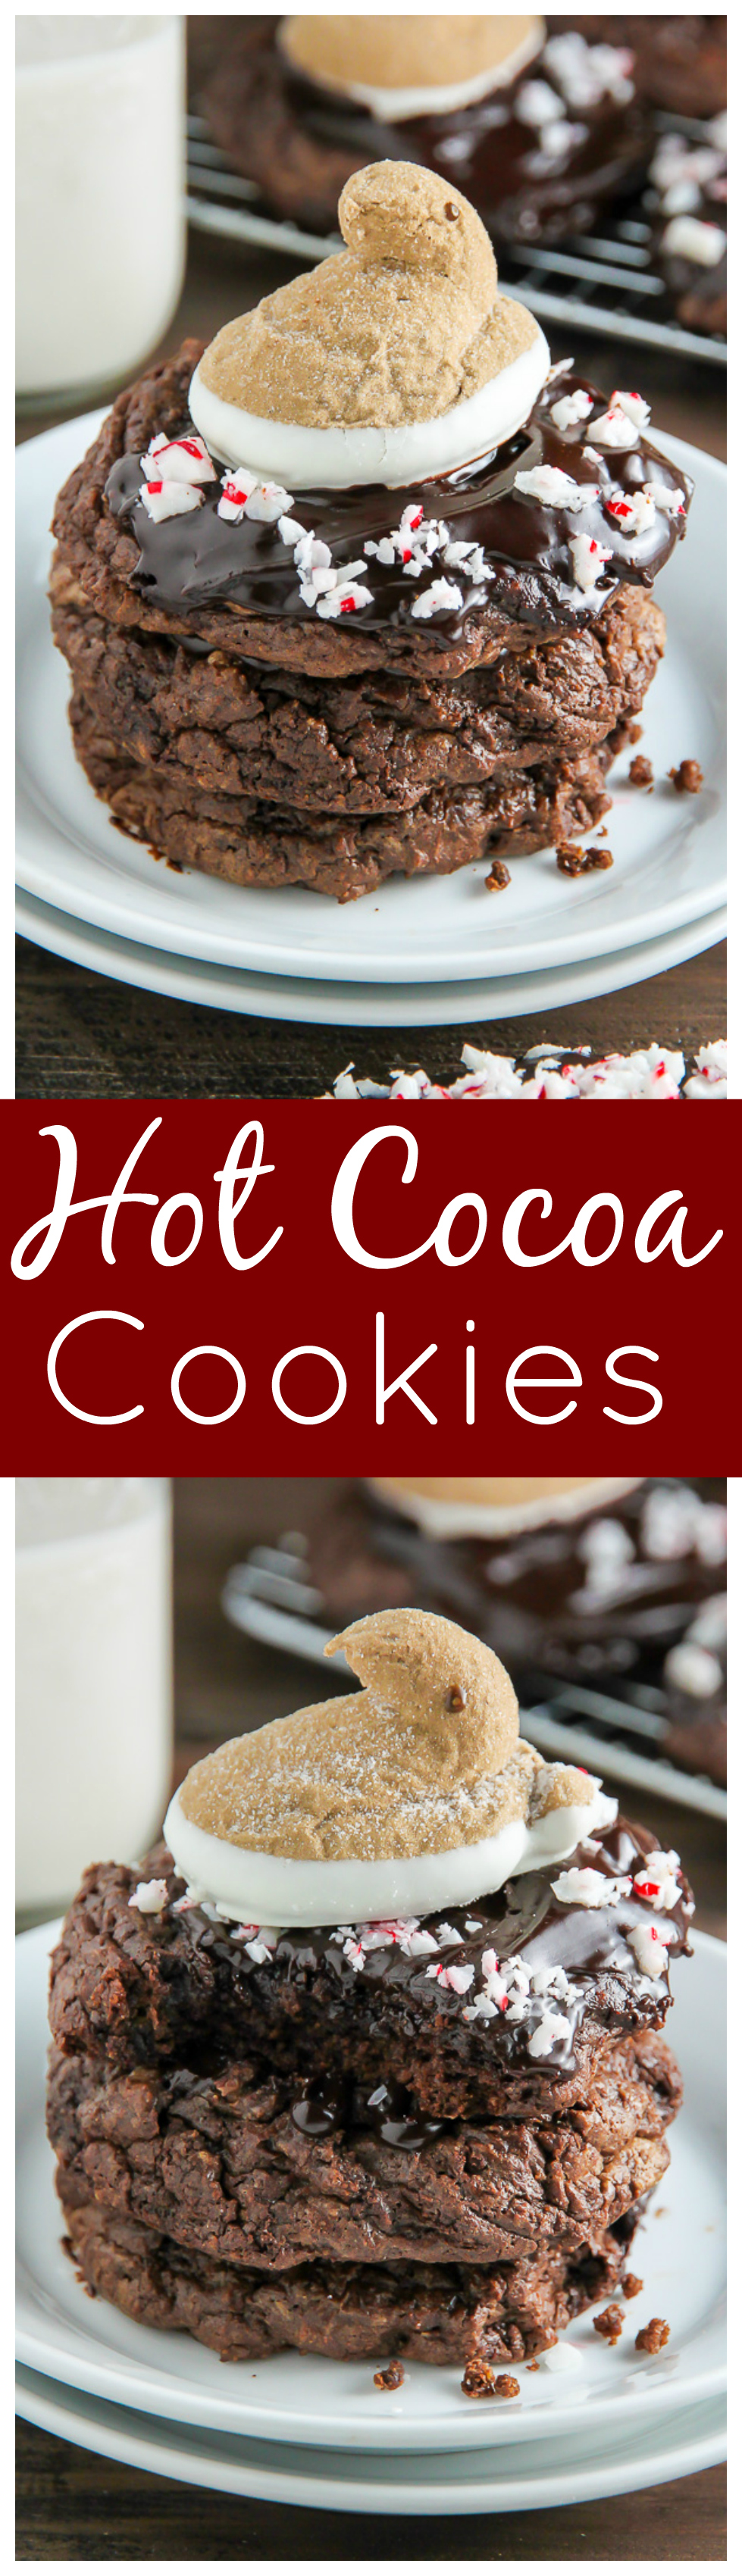 Peeps Peppermint Hot Chocolate Cookies - Baker by Nature